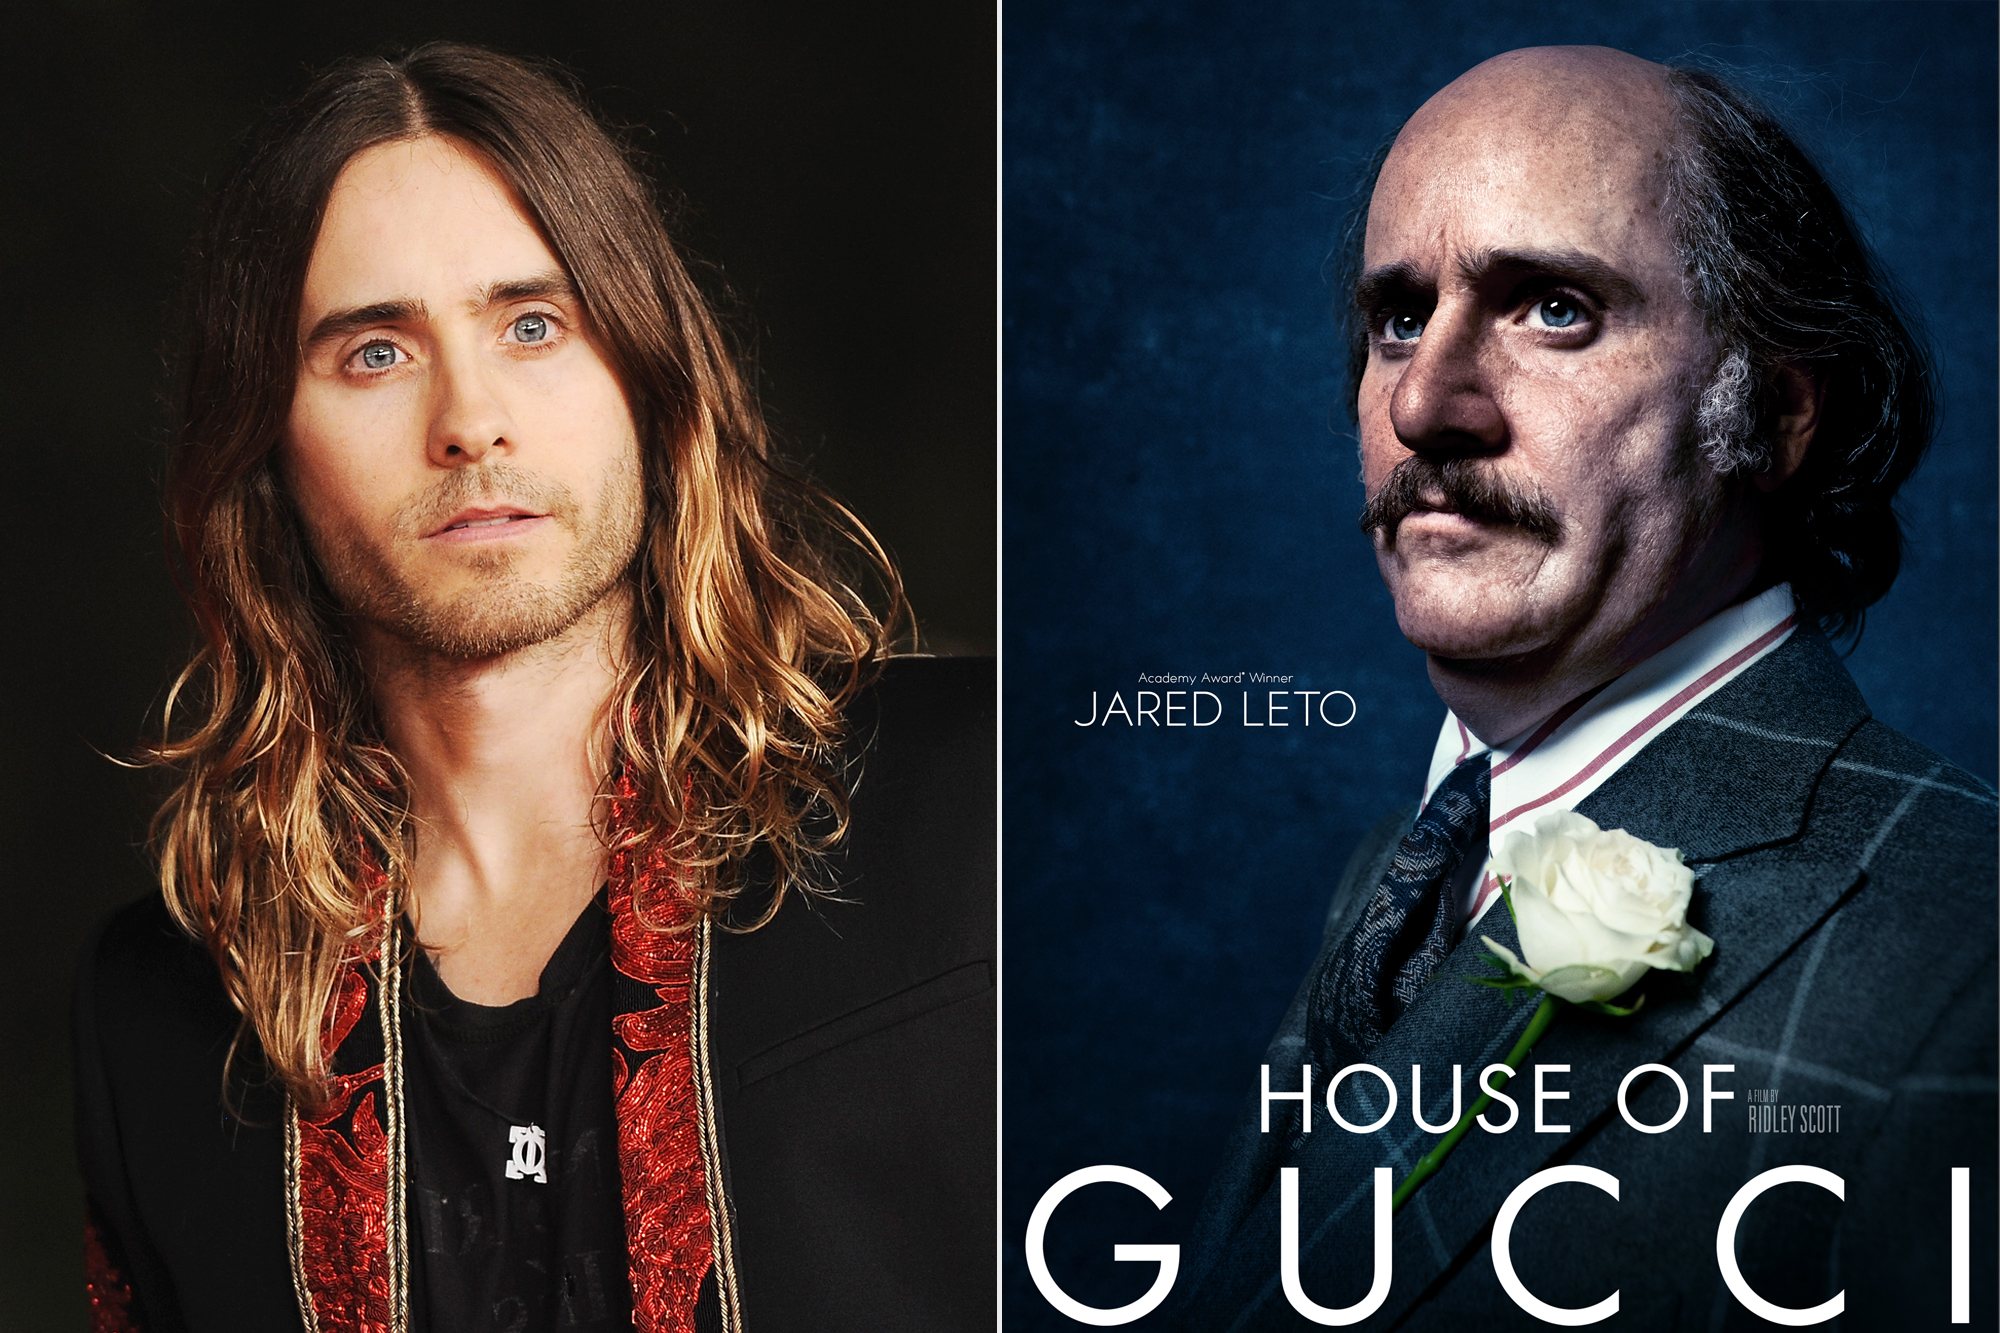 Jared Leto; House of Gucci